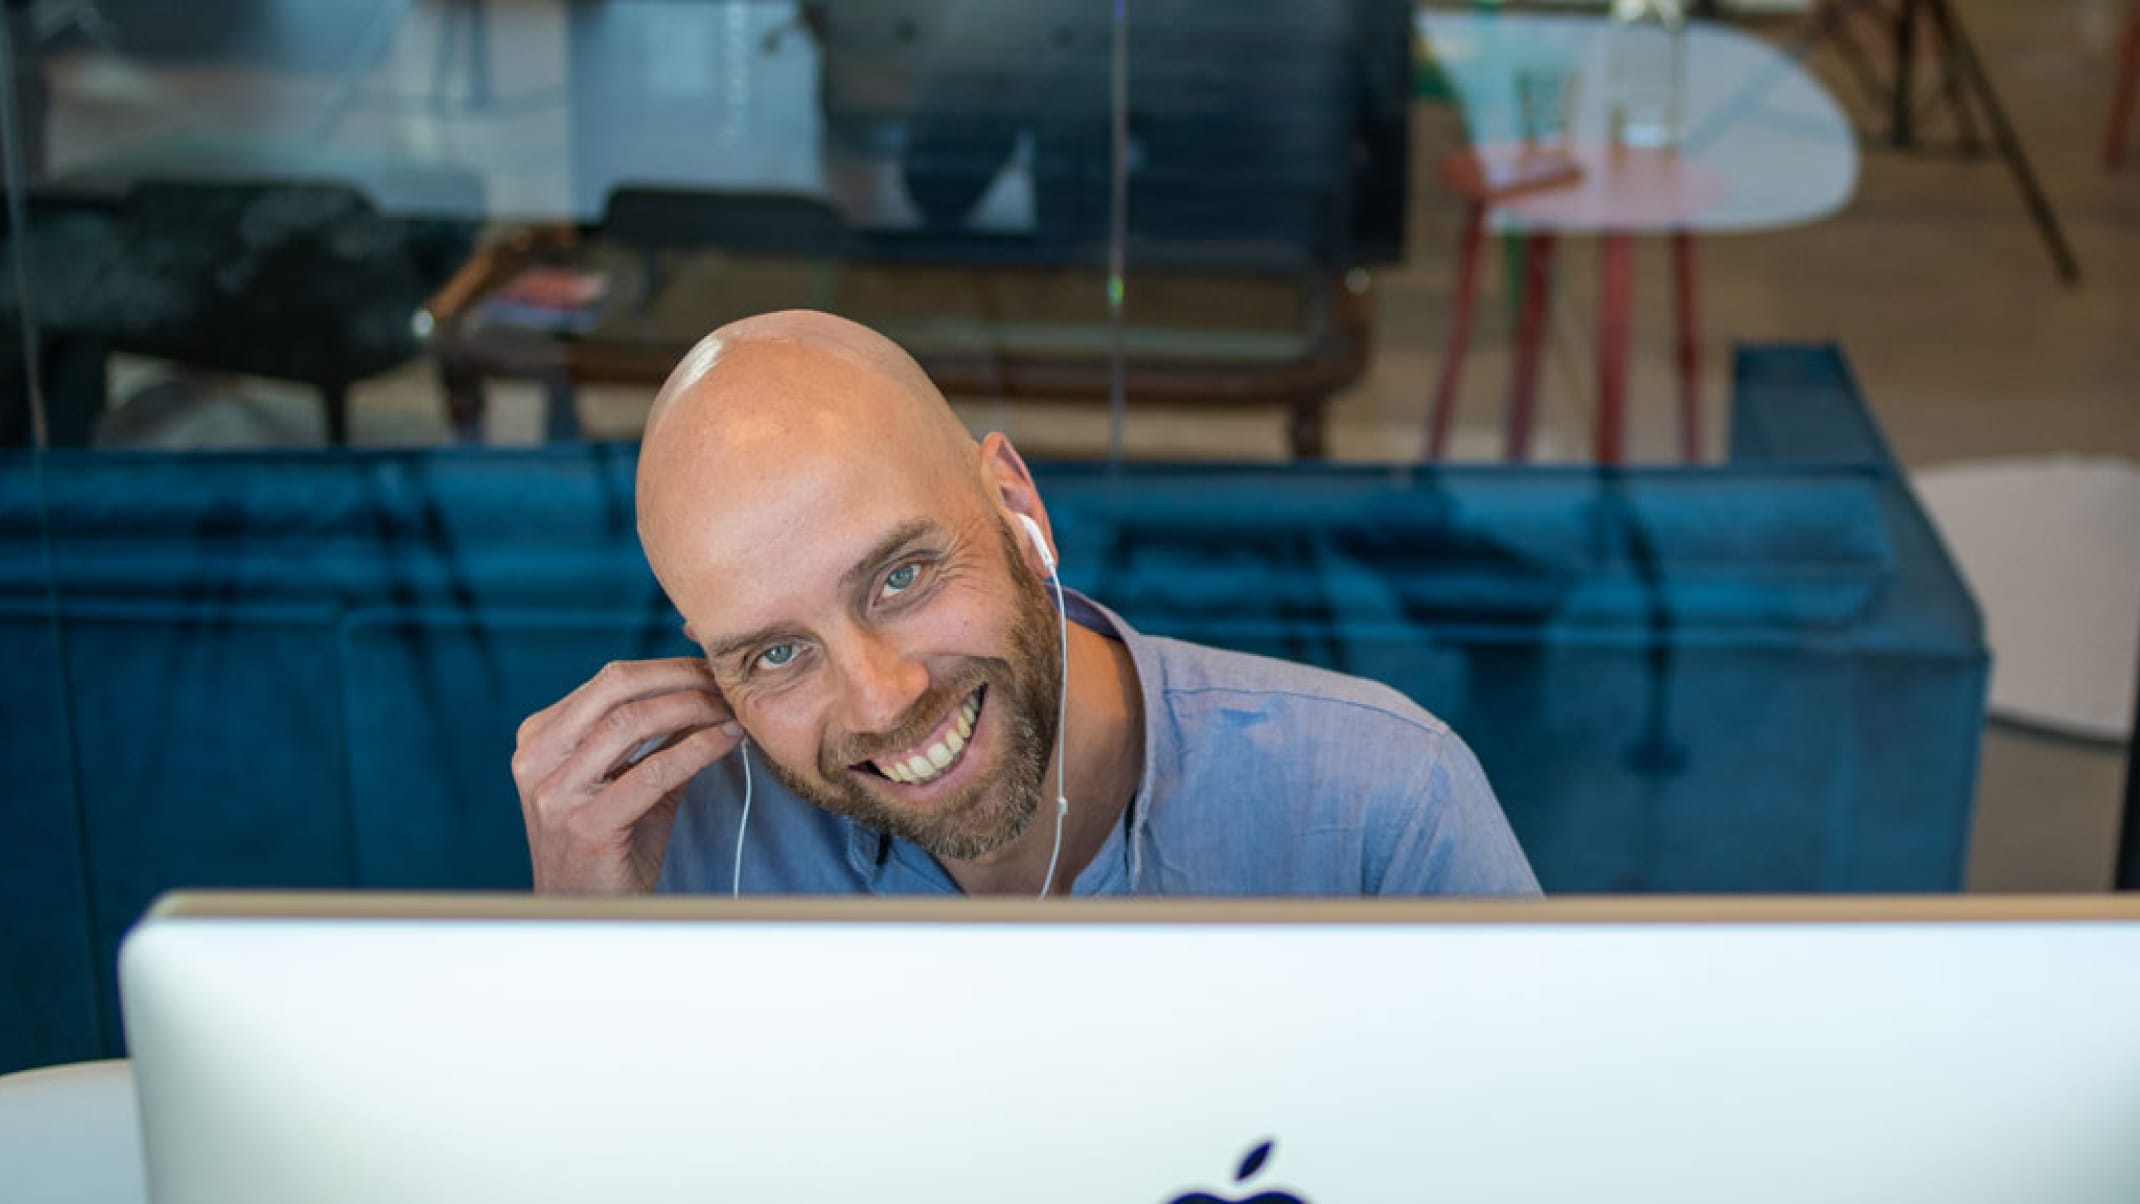 Online Facilitator smiling to camera while sitting behind a large computer screen